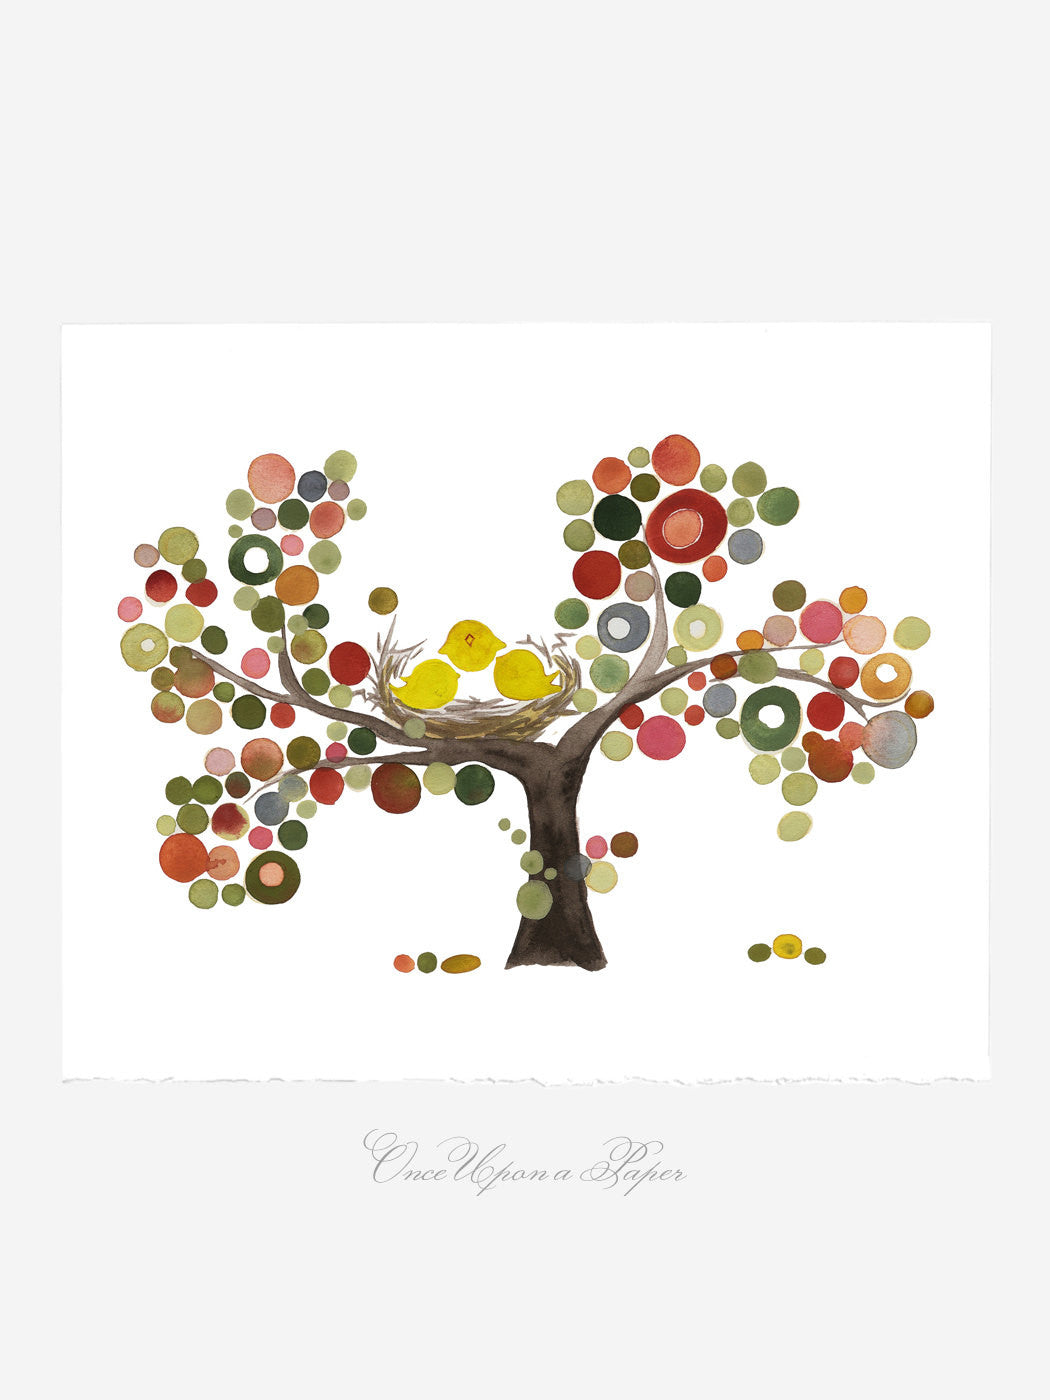 Wedding Gift Anniversary Gift - FAMILY TREE NEST - Giclee Art Print Reproduction of Watercolor Painting -Trees of Life Collection